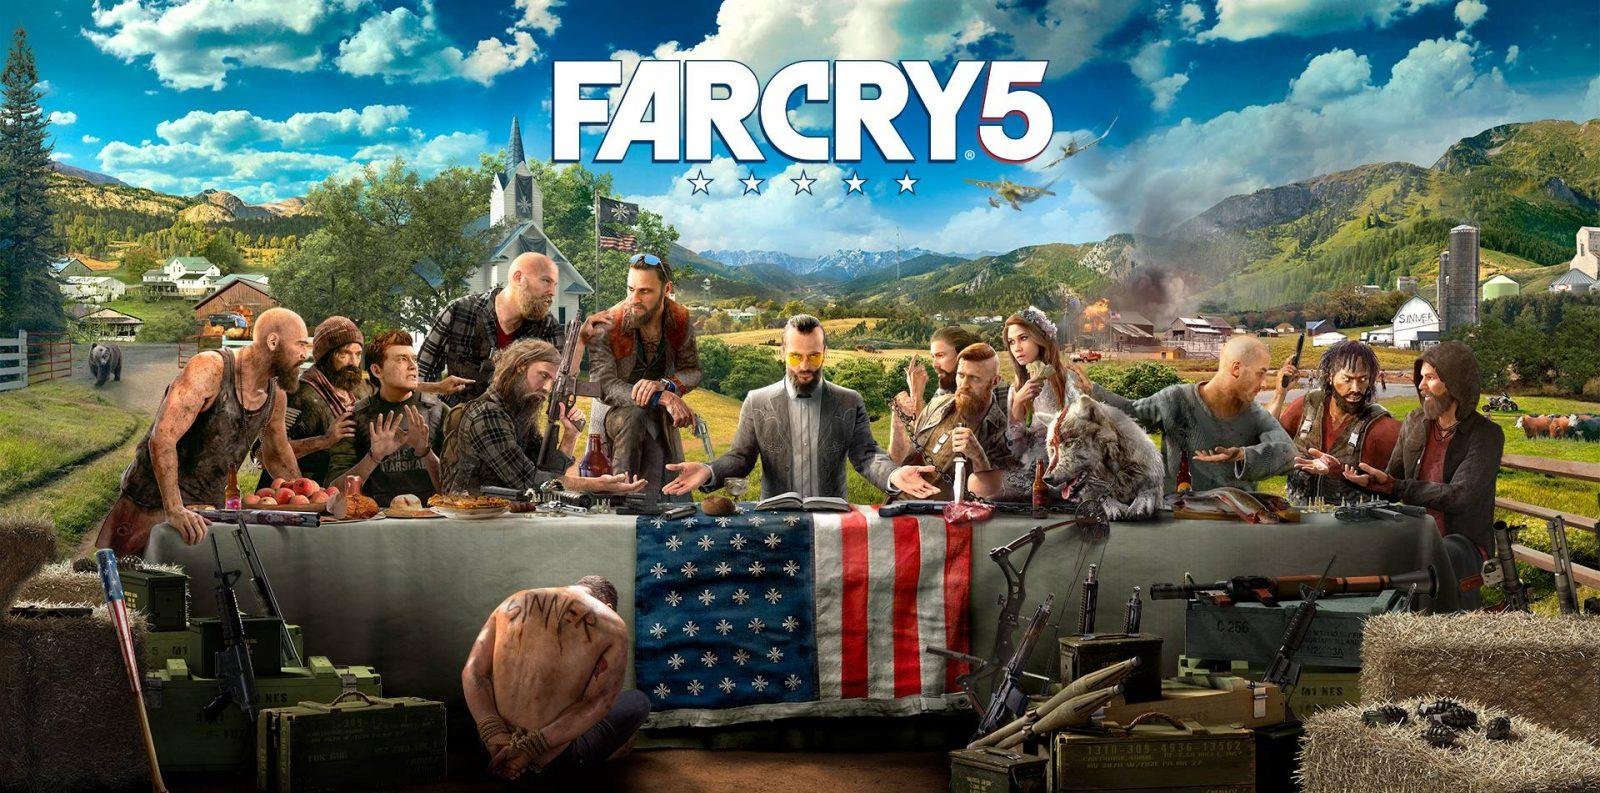 2018's Most Anticipated Games, 46013 farcry5 keyart 1920x950 1600x793%, uncategorised, lifestyle%